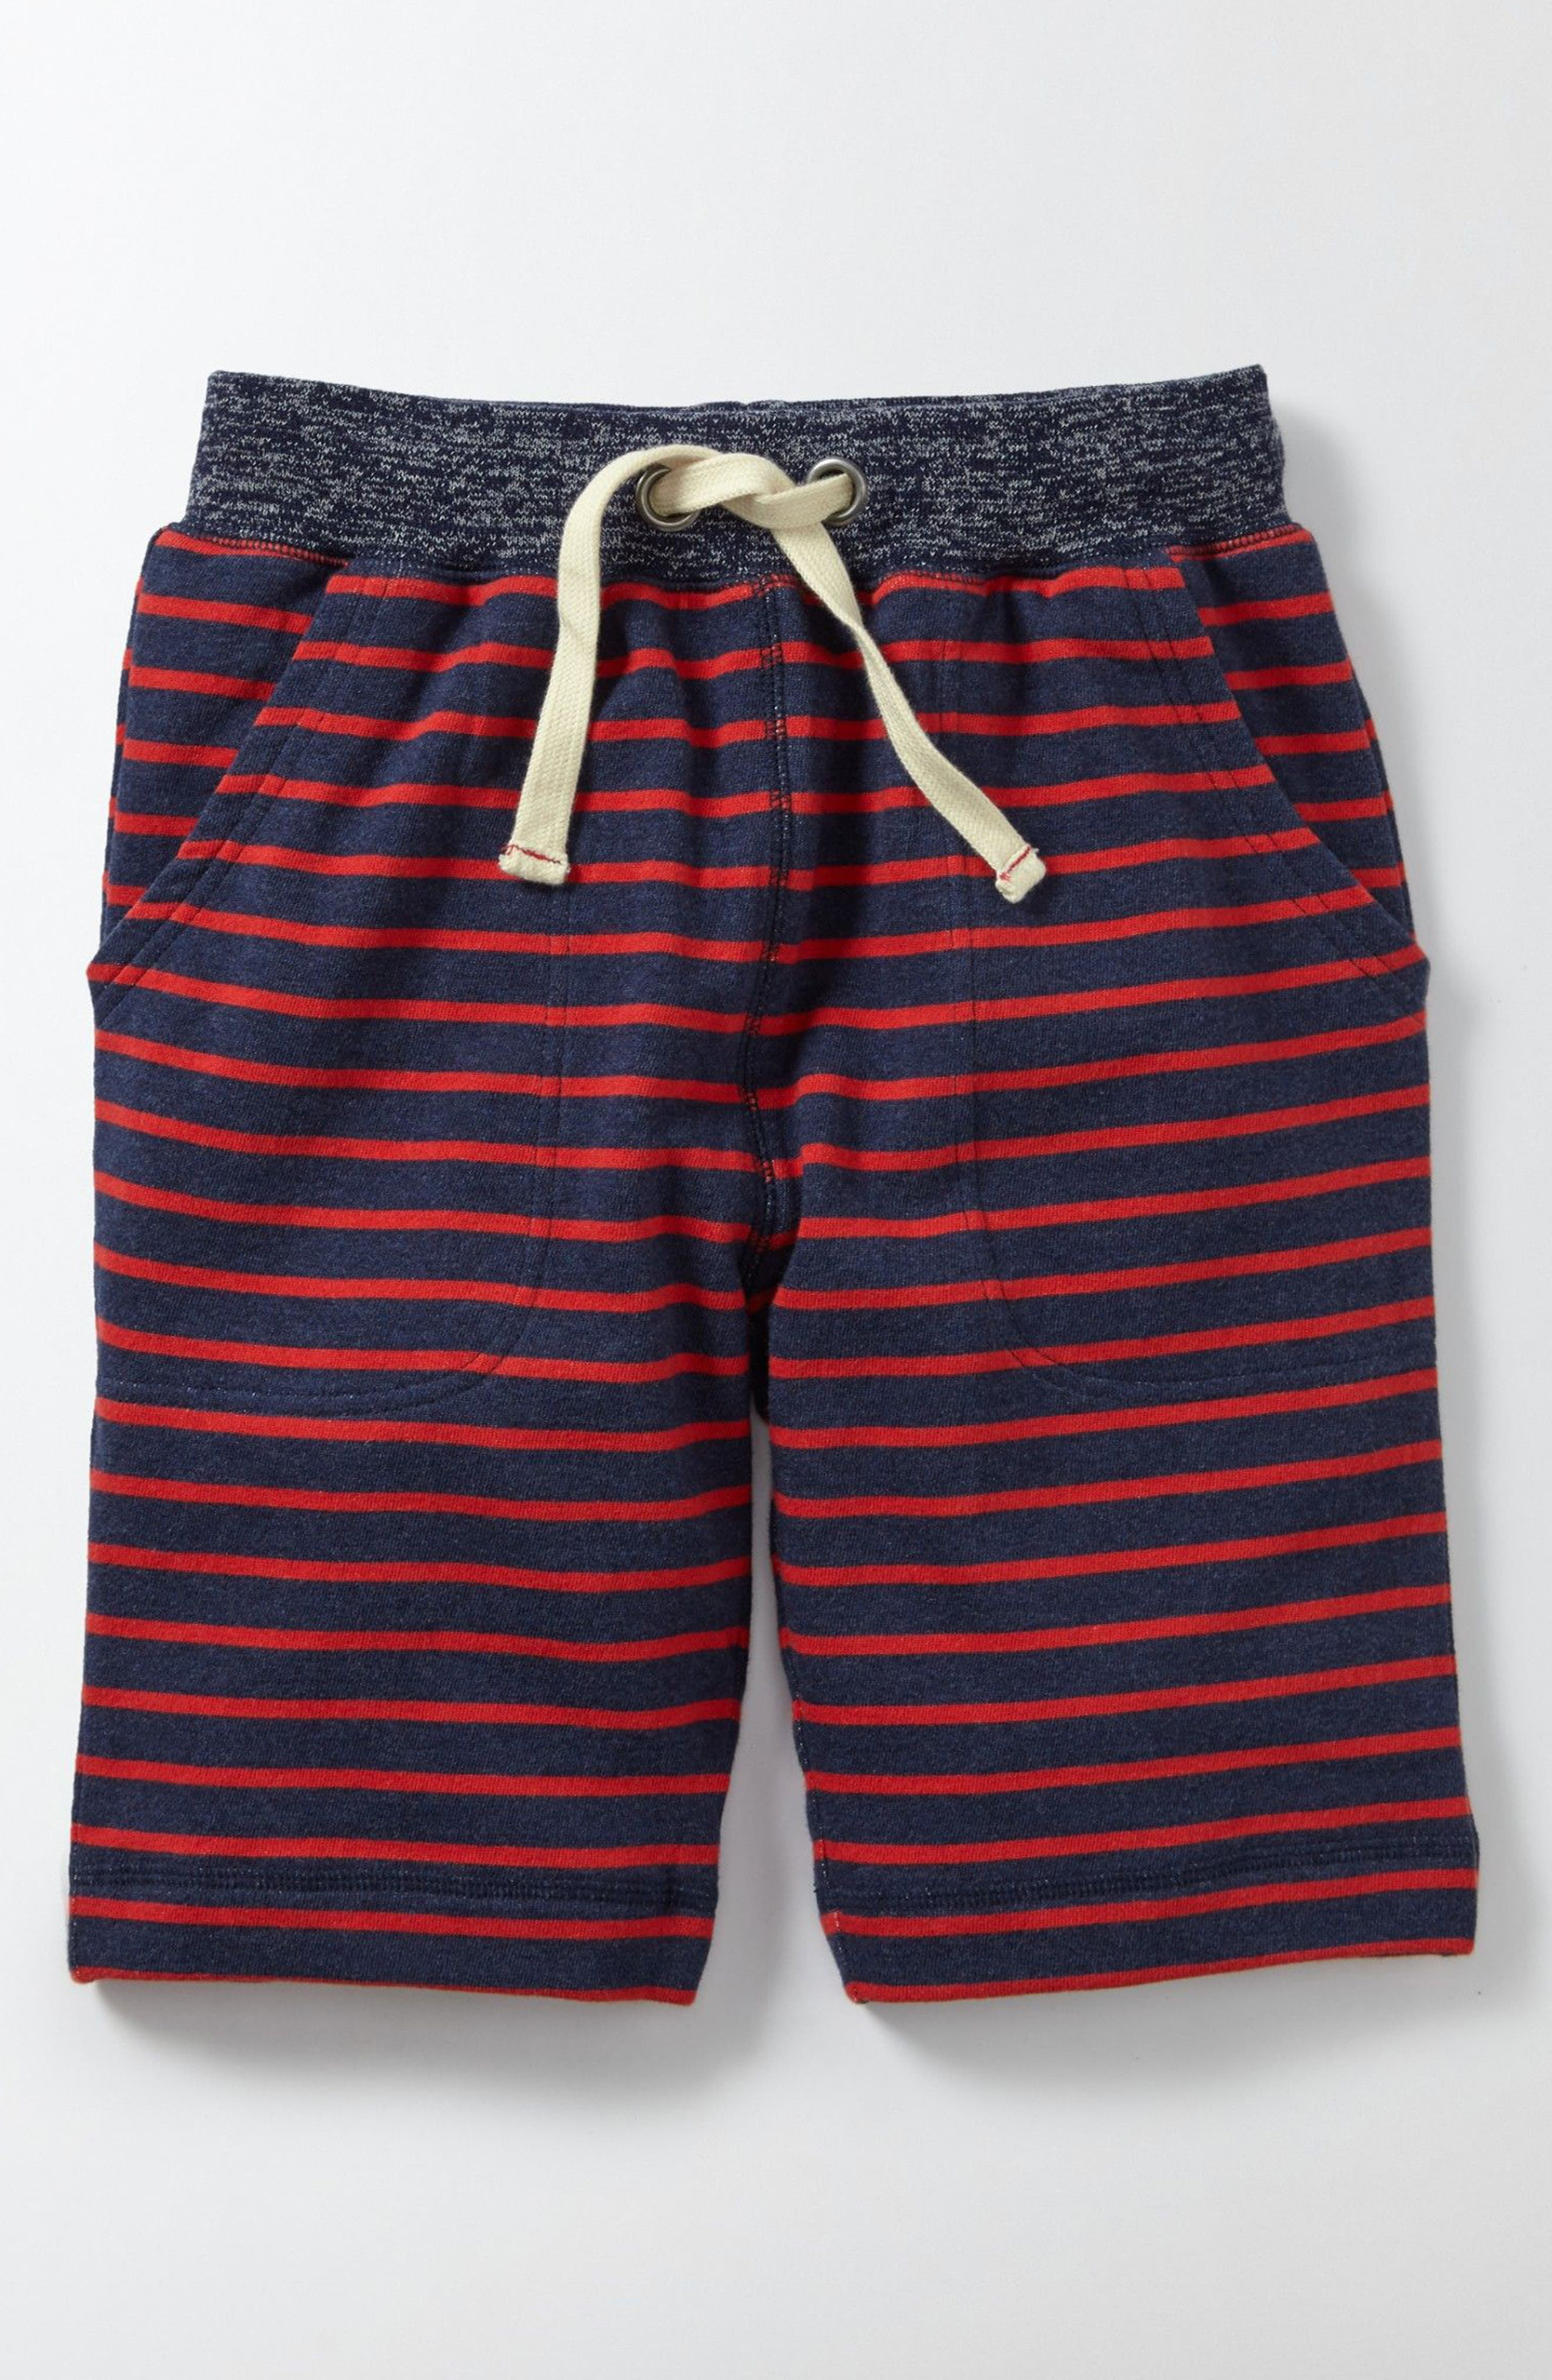 MINI BODEN Sweatshorts